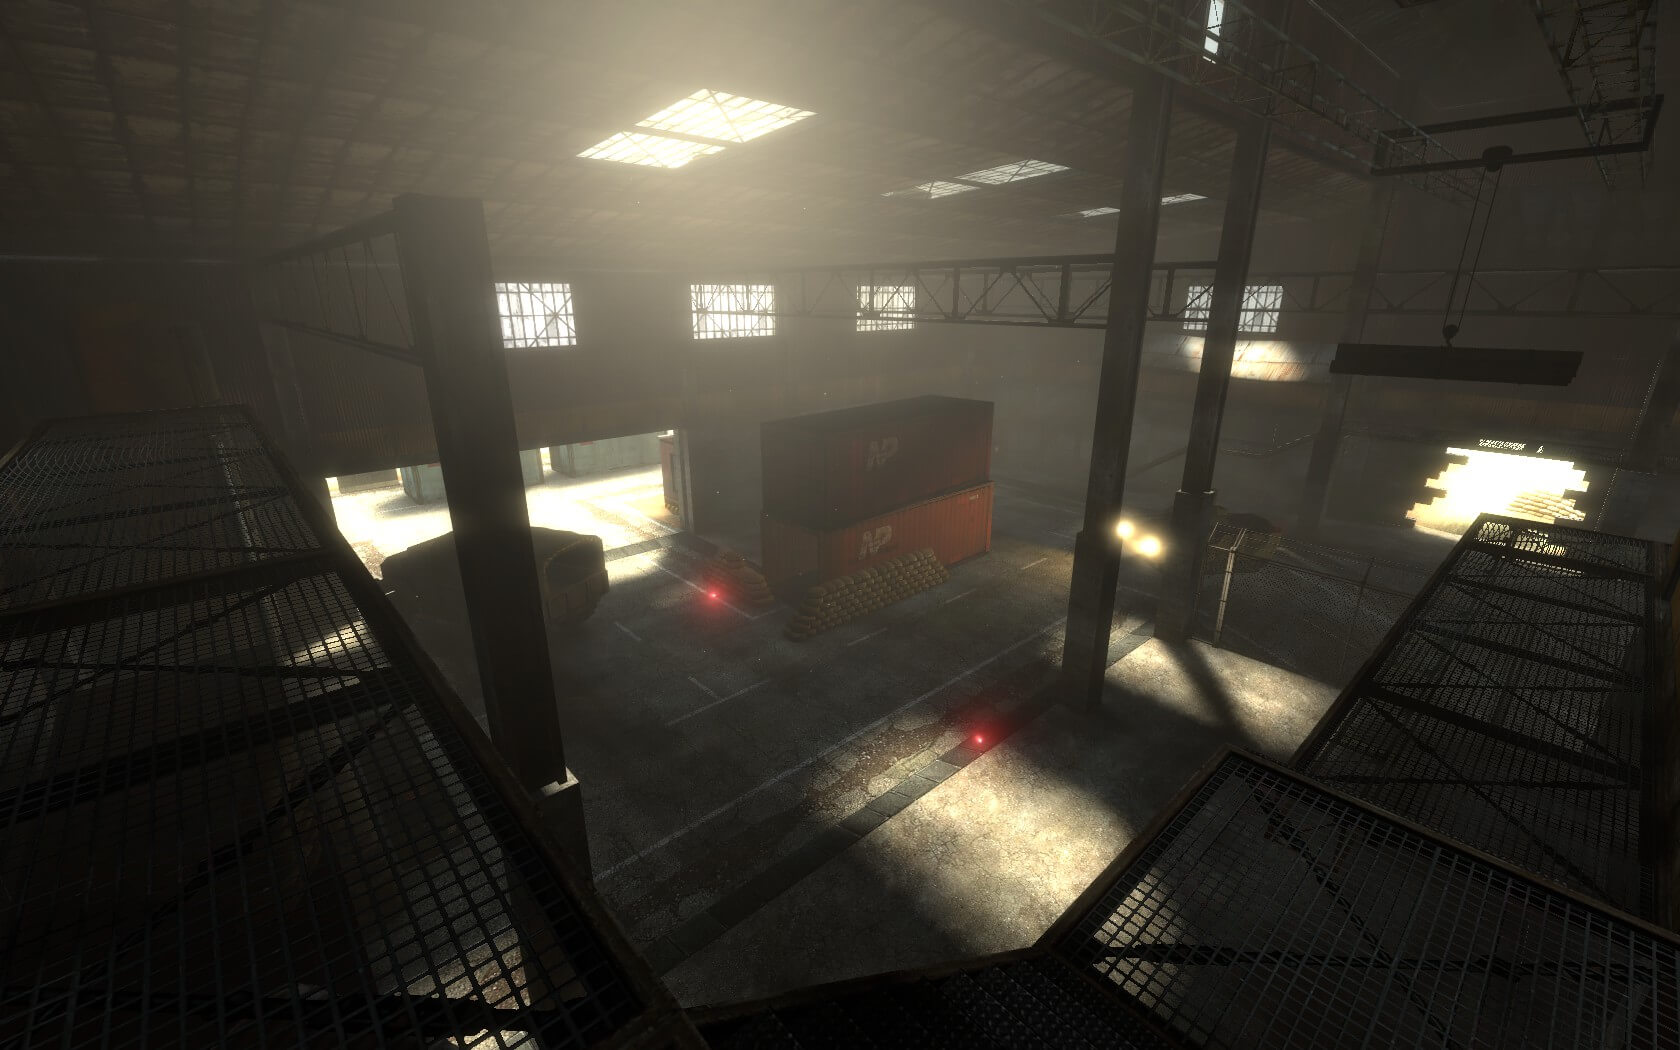 Another screenshot of the Red depot assault point from the warehouse catwalks.